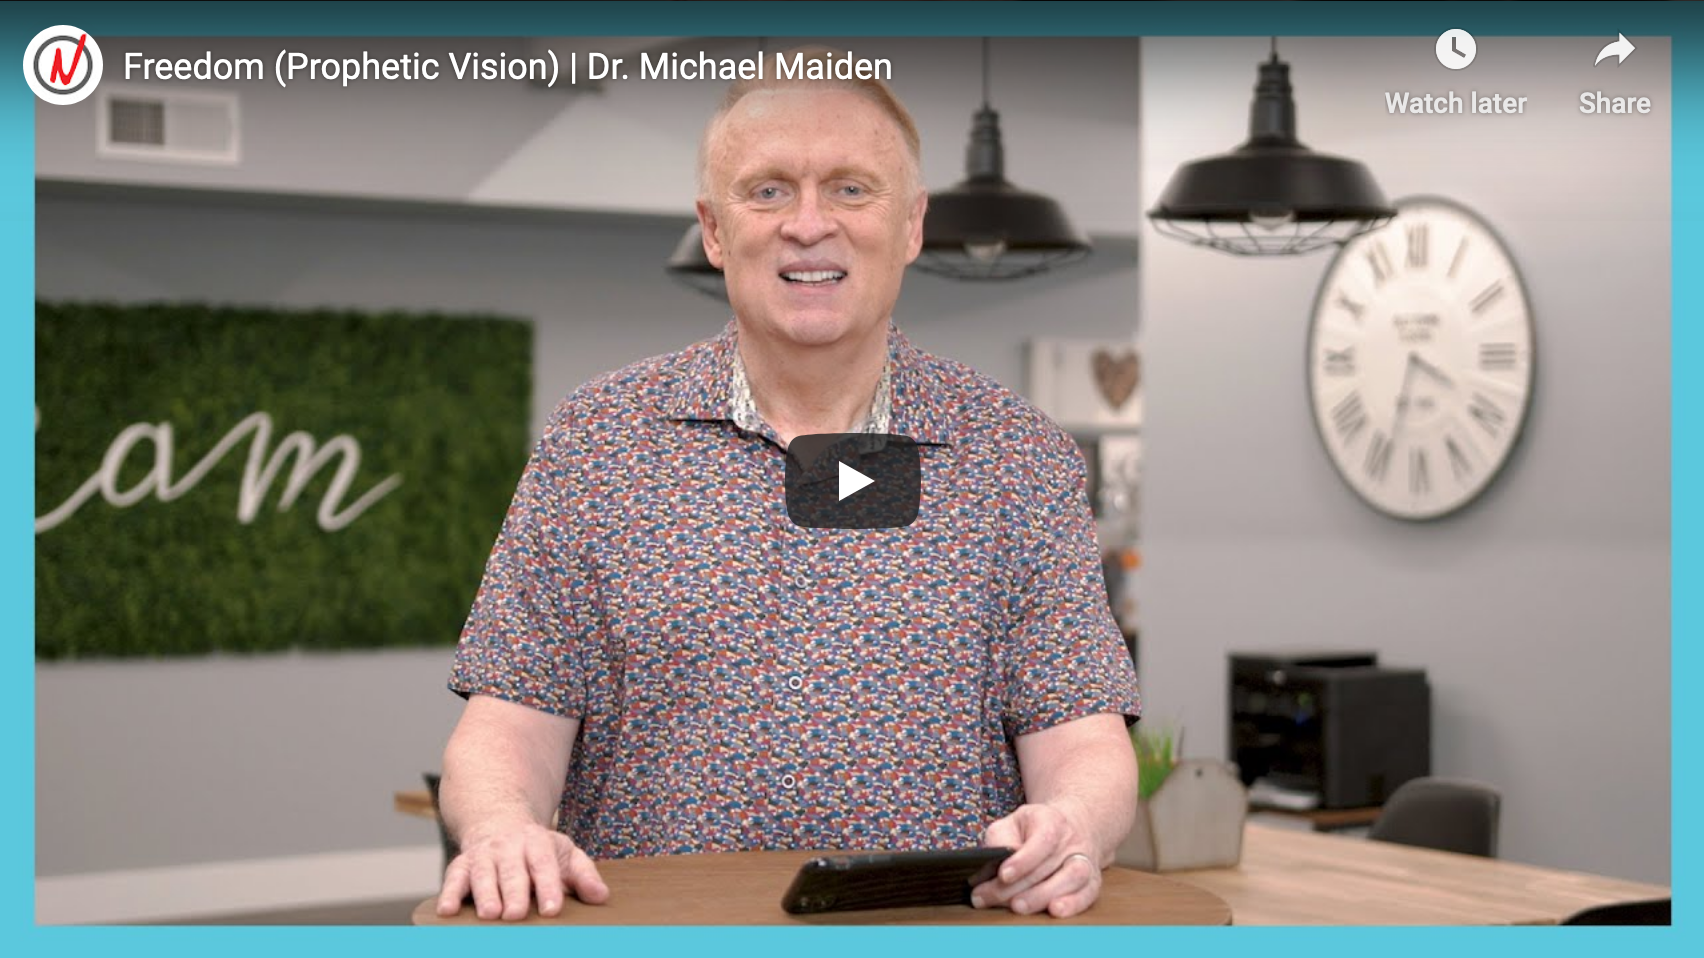 Prophetic Vision: Freedom